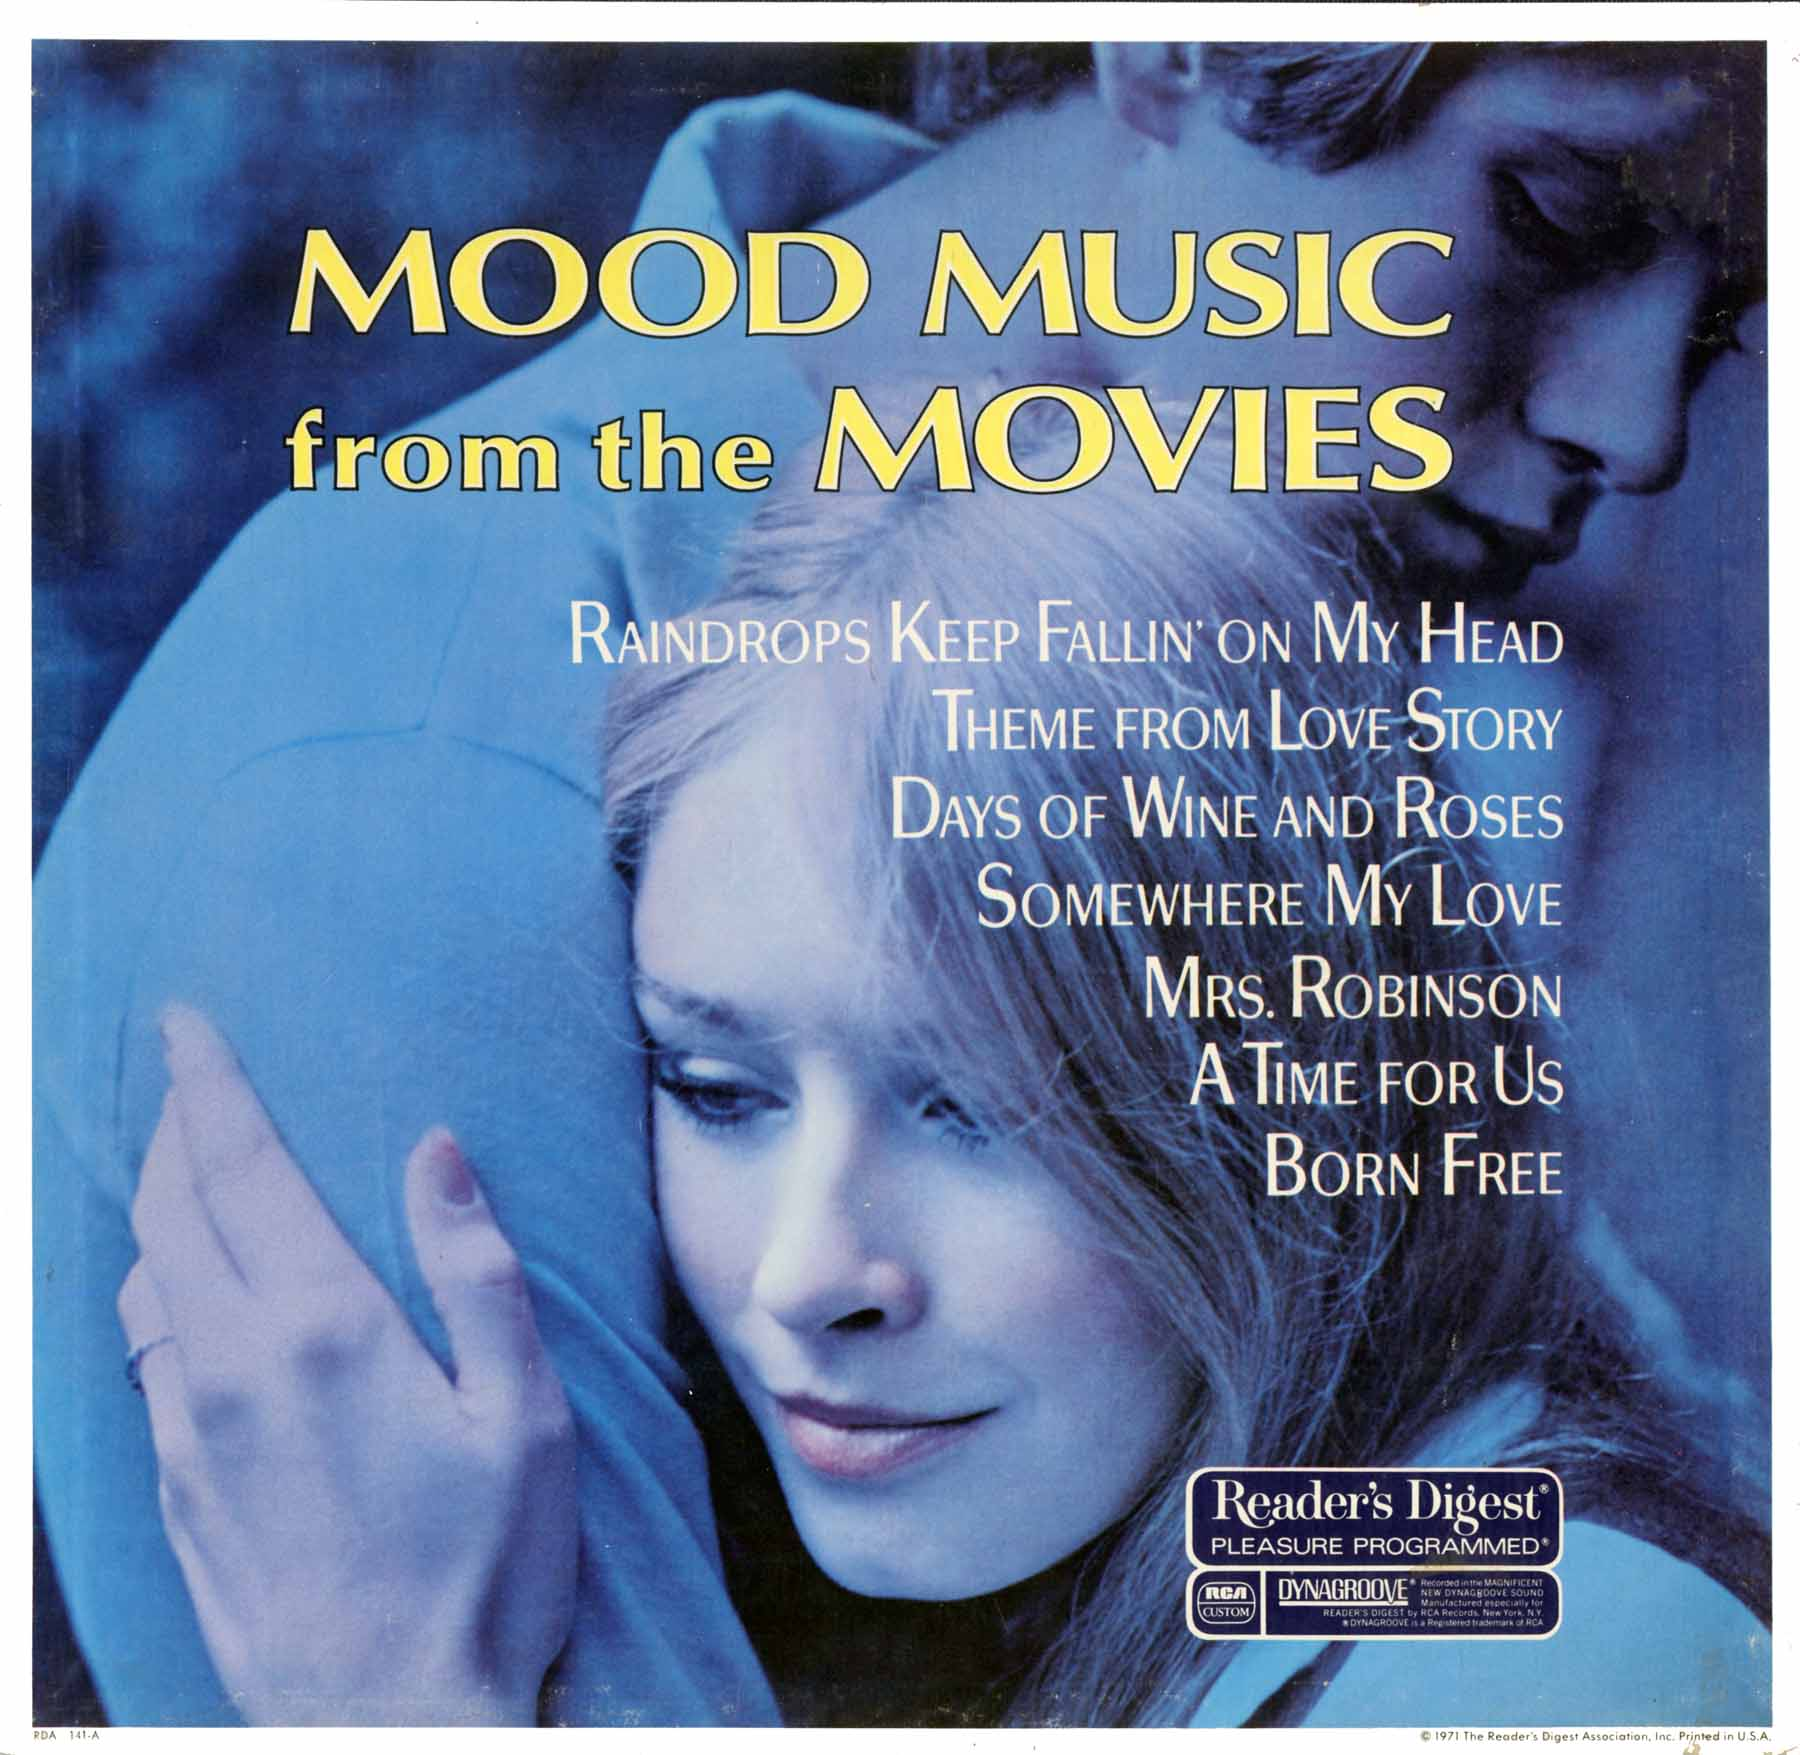 RDA141 - Mood Music From the Movies on CD